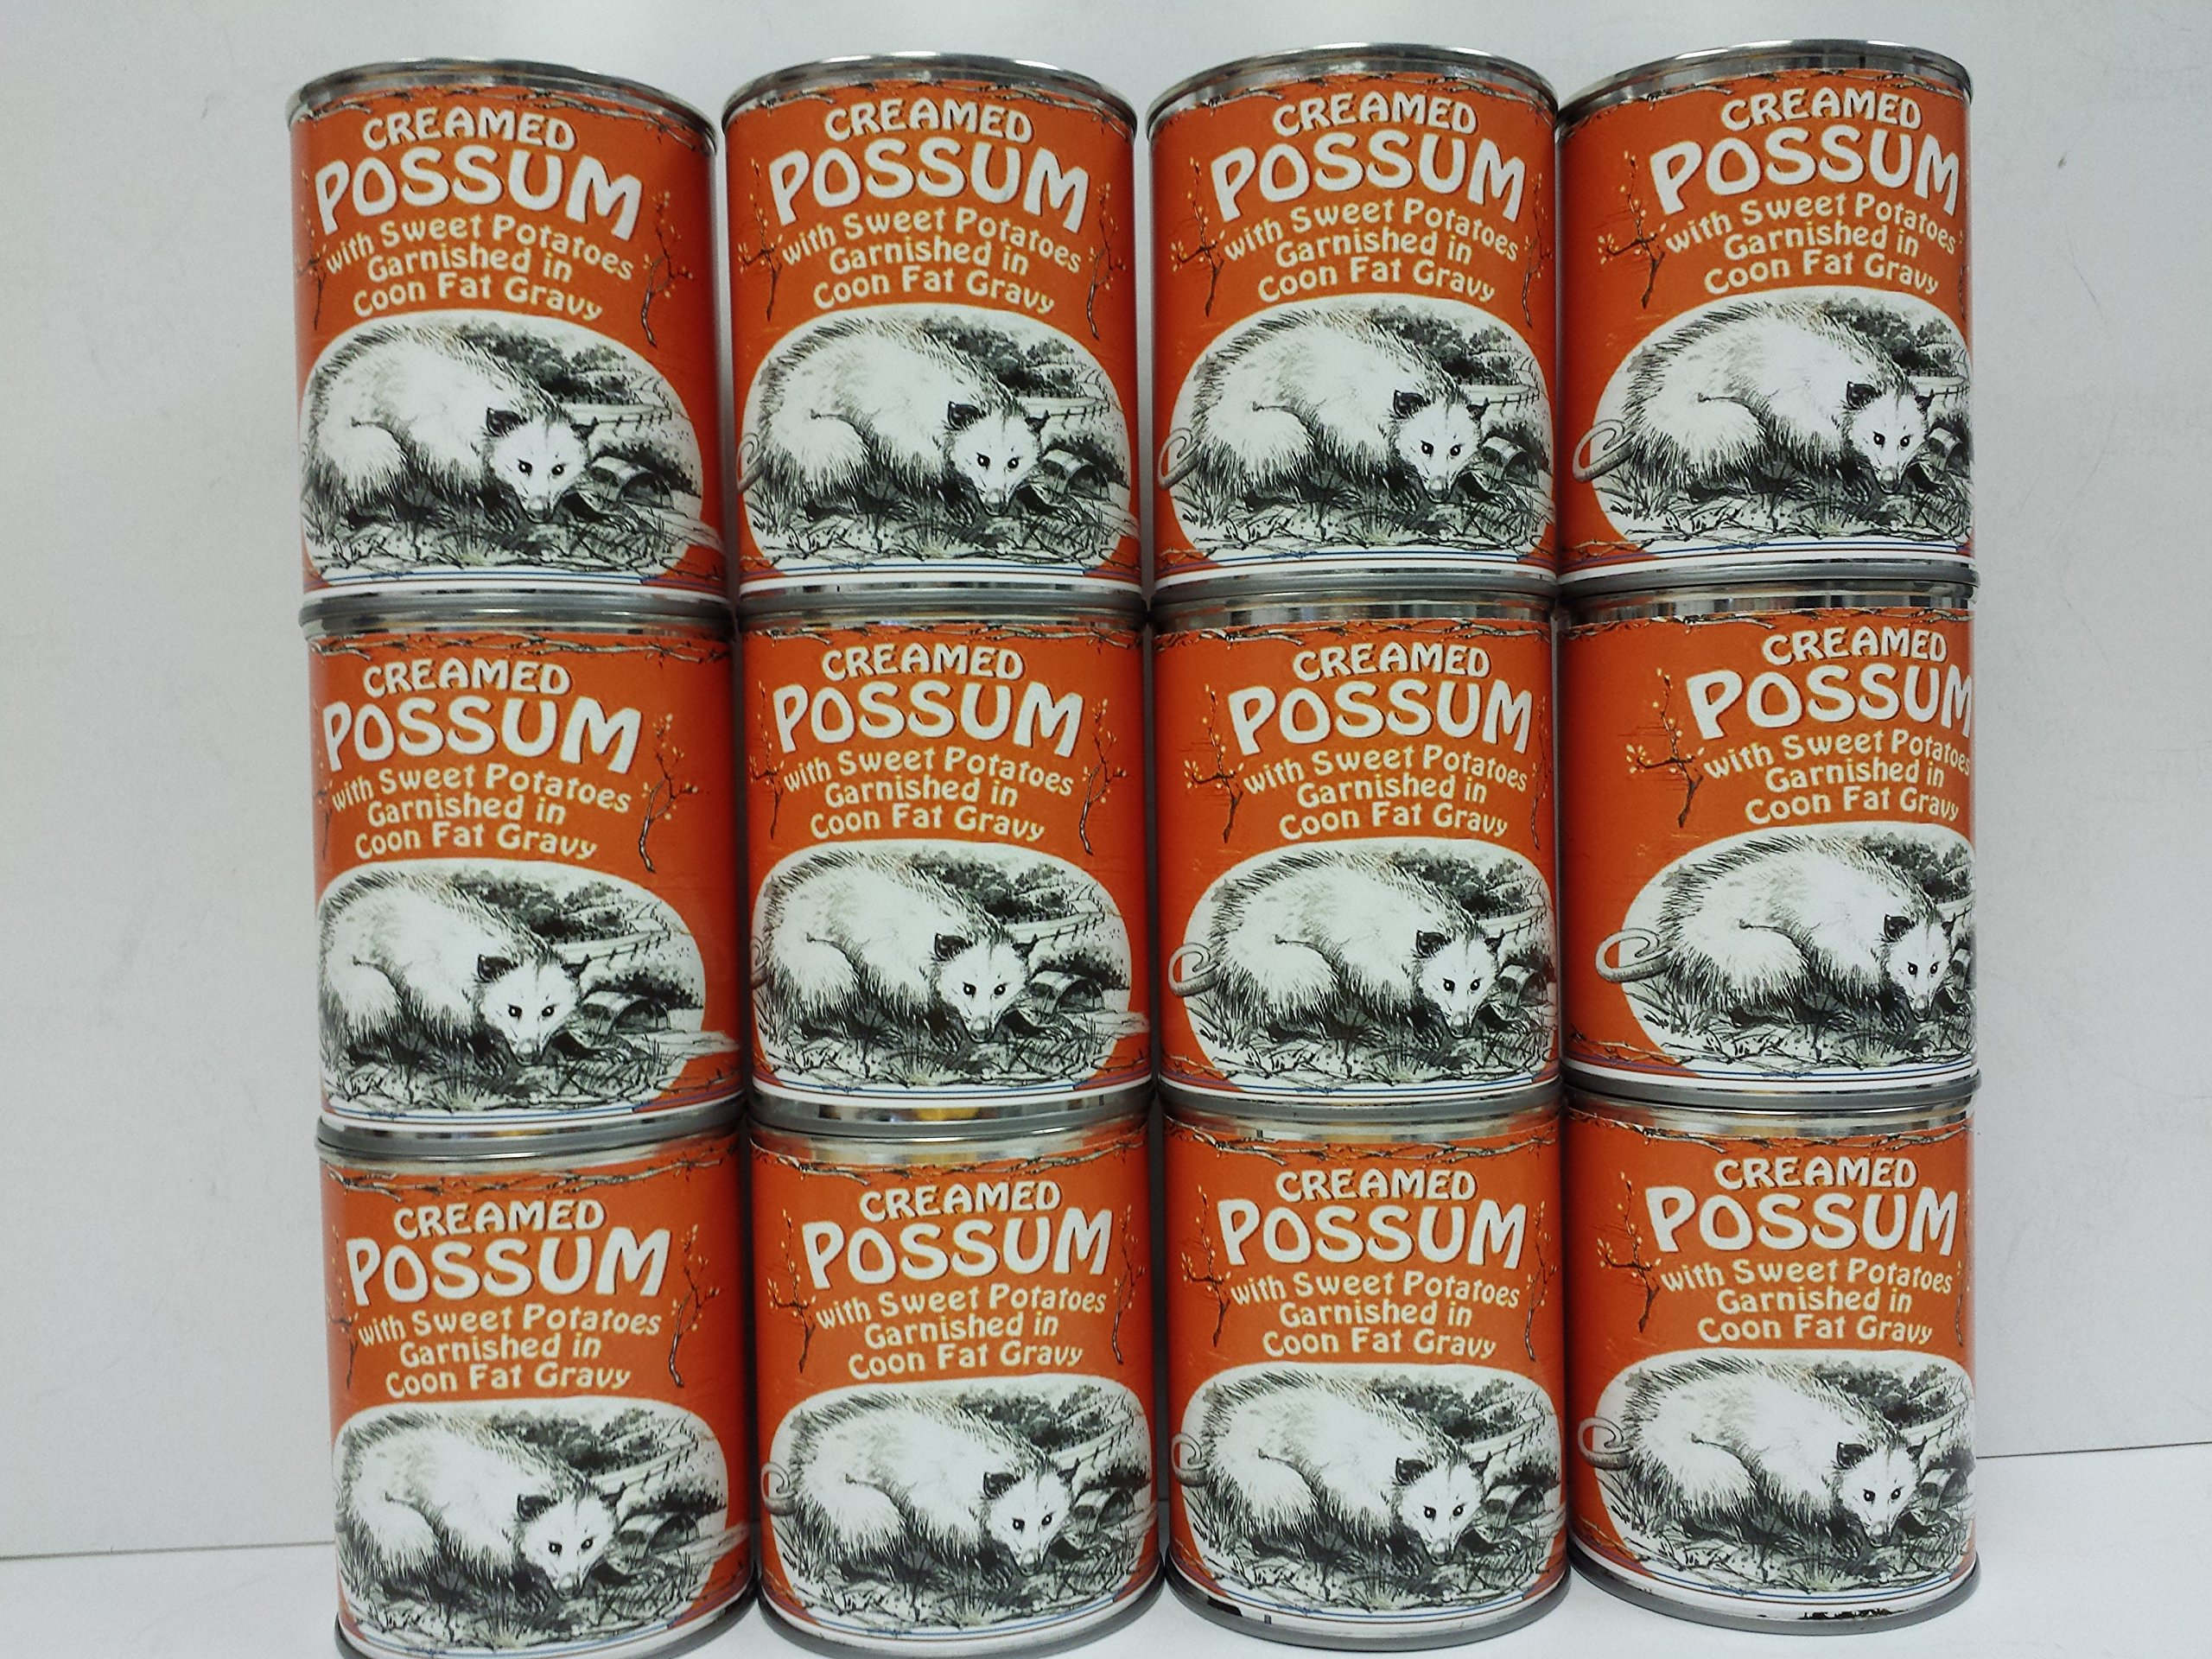 Gag Gift 12-Pack of Creamed Possum in Coon Fat Gravy Garnished with Sweet Potatoes by BluePirate